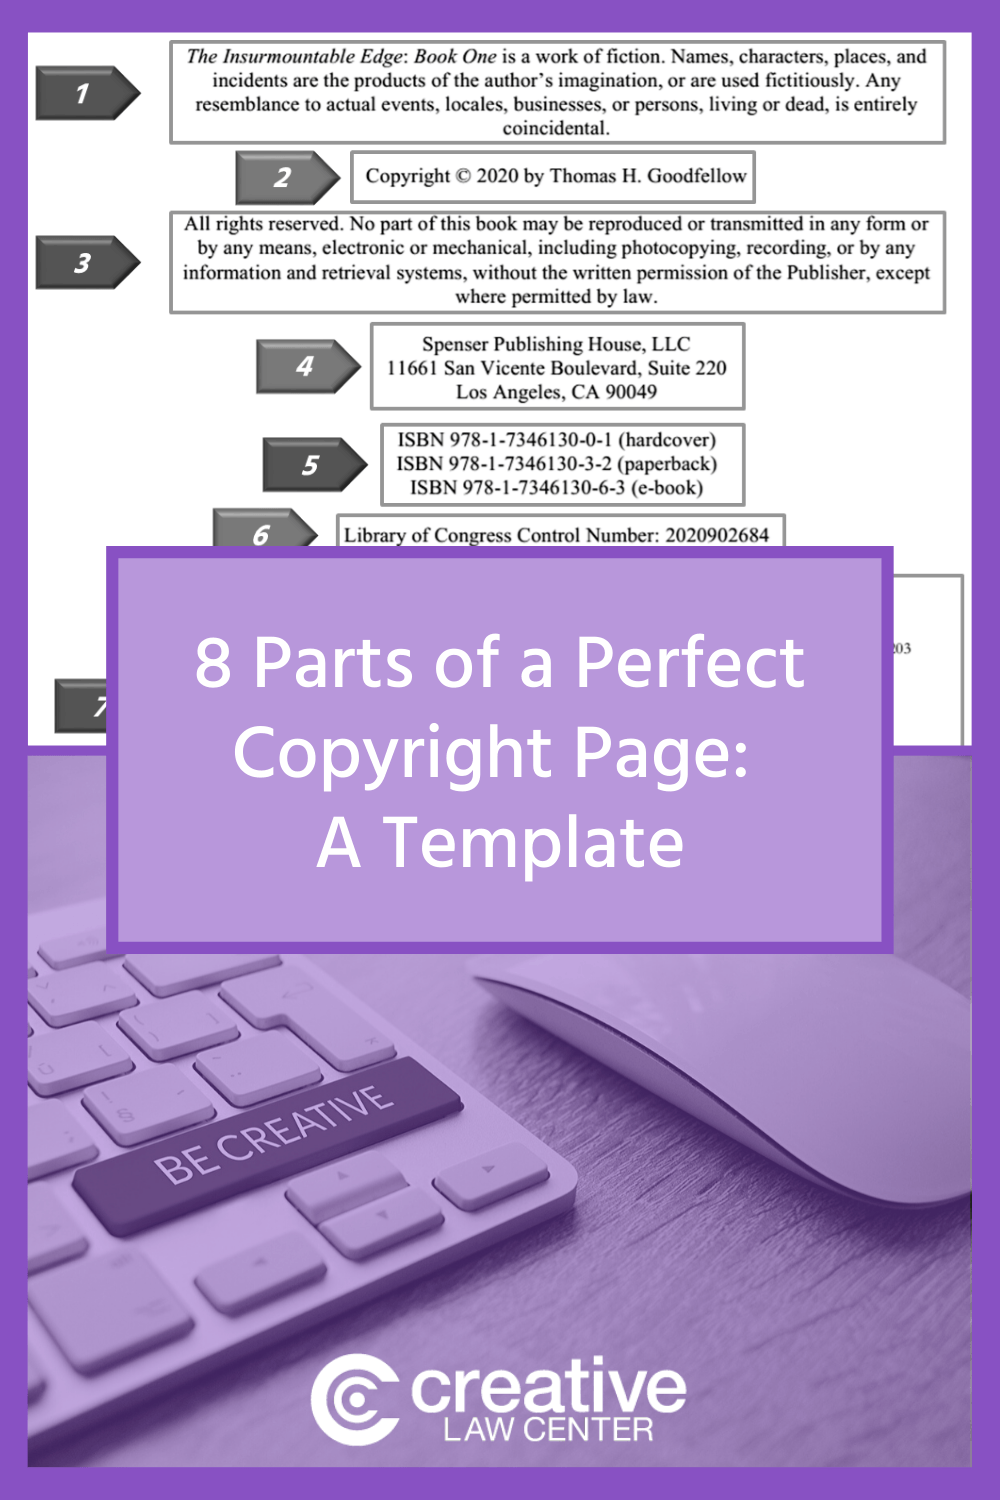 8 Parts of a Perfect Copyright Page